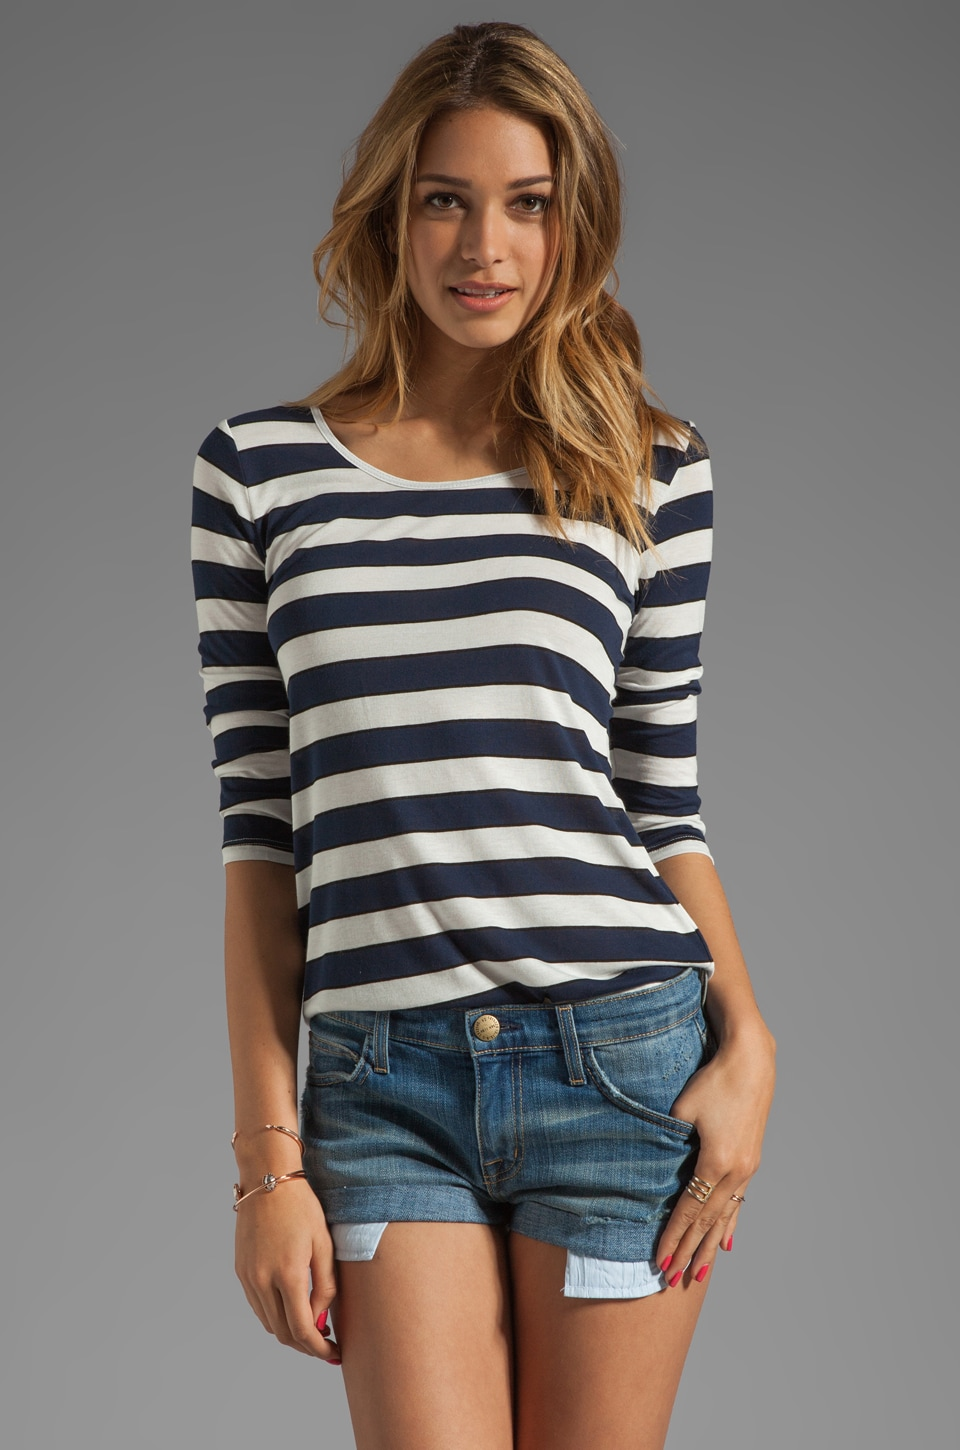 19 4t 3/4 Sleeve with Elongated Back in Navy/White Stripe/Black Piping